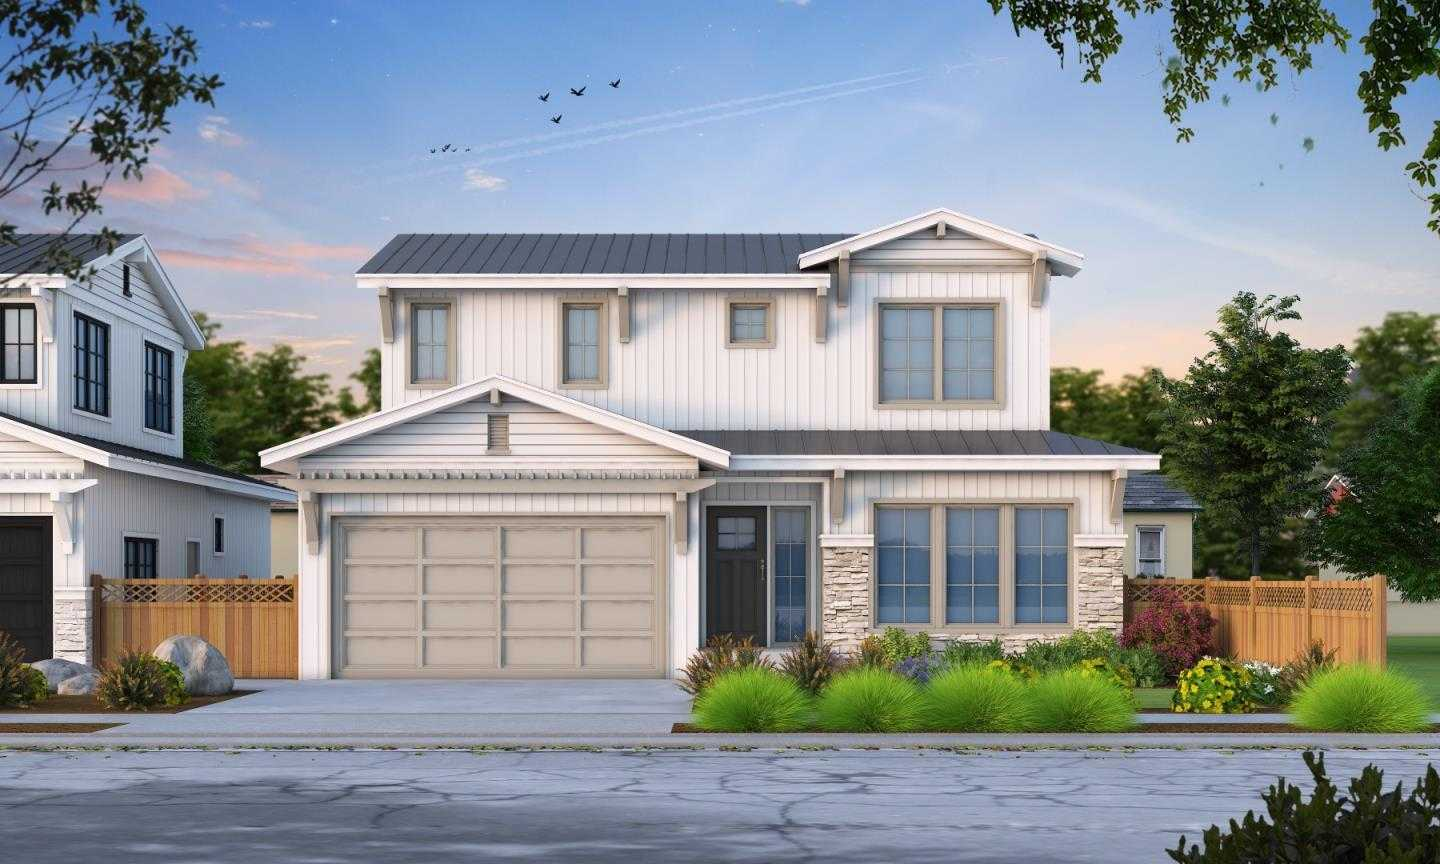 $1,950,000 - 3Br/3Ba -  for Sale in Sunnyvale